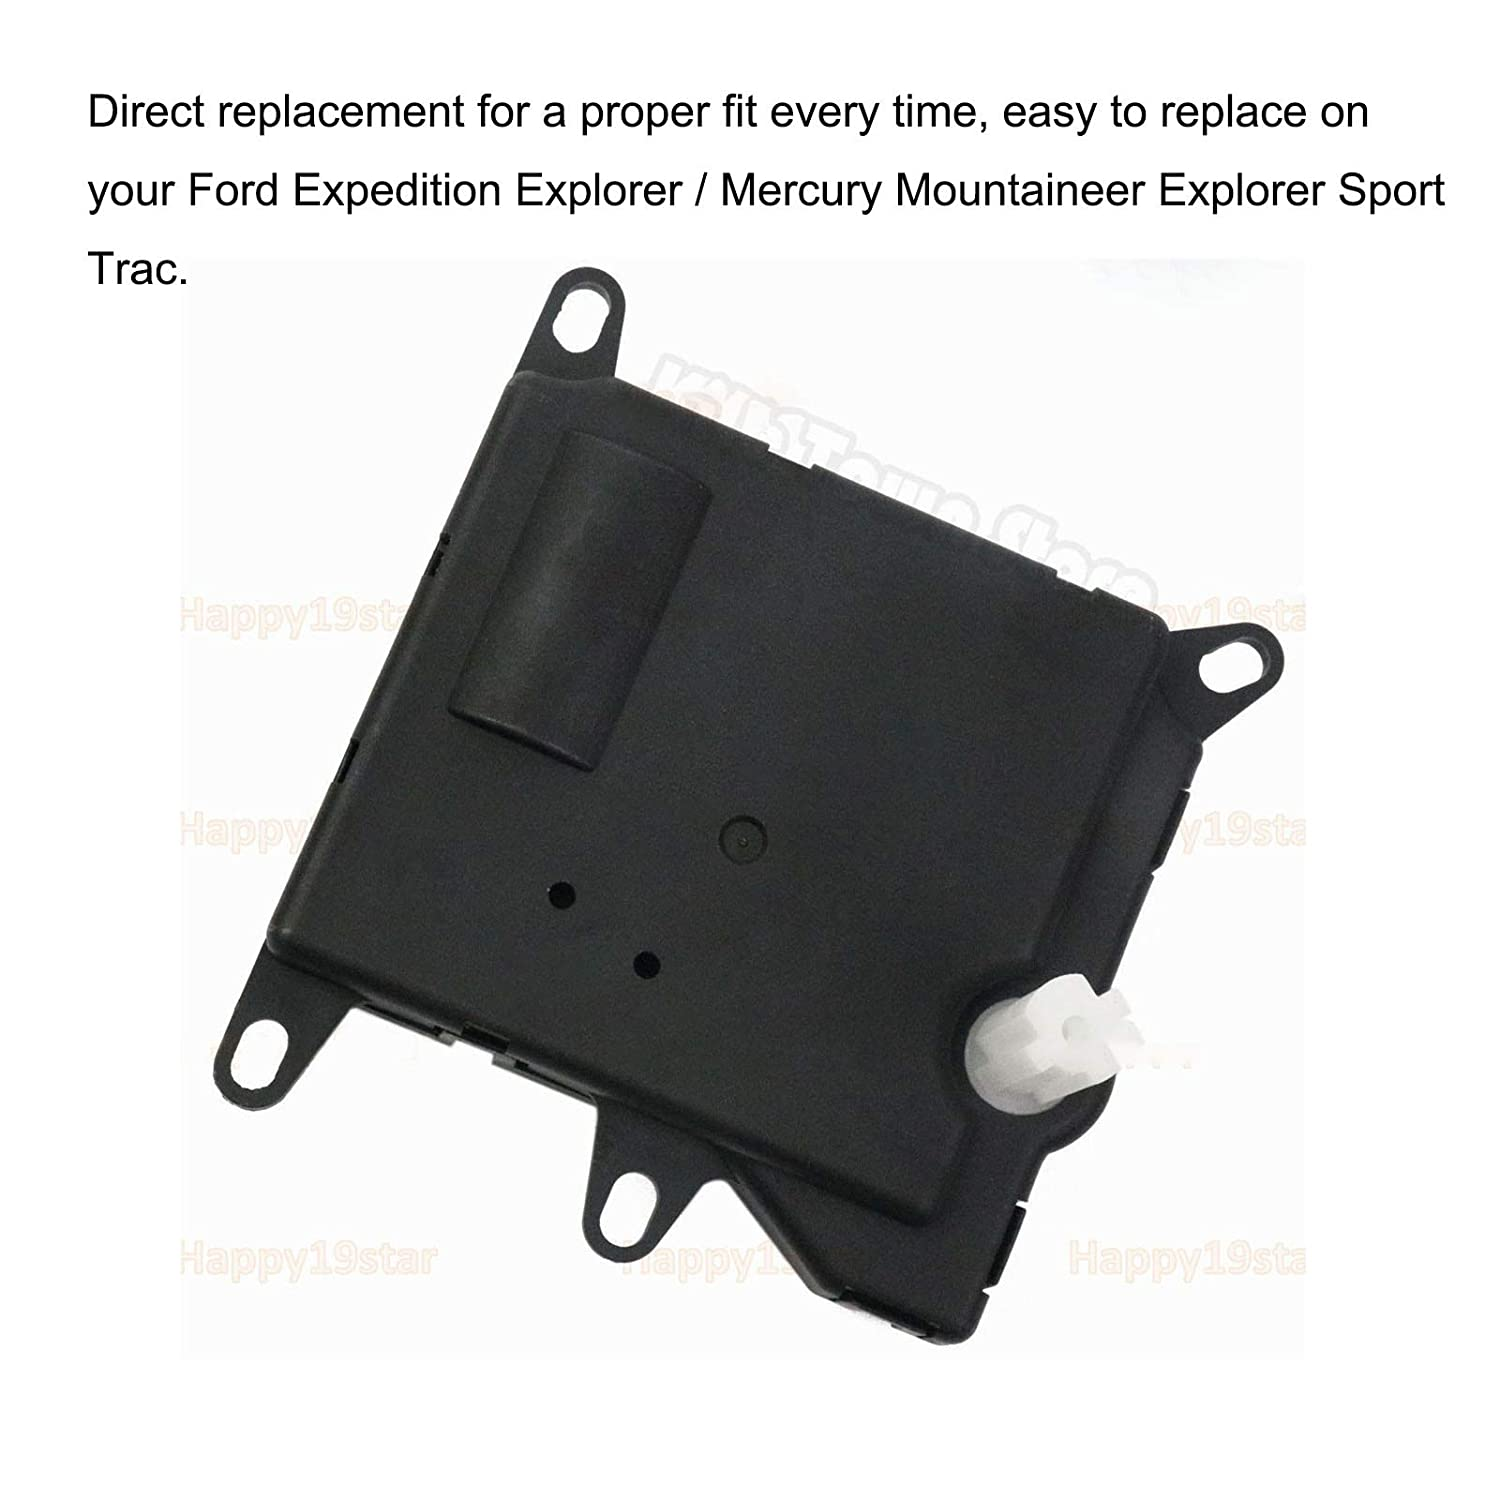 Kunttai 1L2Z19E616CA HVAC Heater Blend Door Actuator YH1744 Fit for Ford Expedition Explorer Sport Trac Mercury Mountaineer